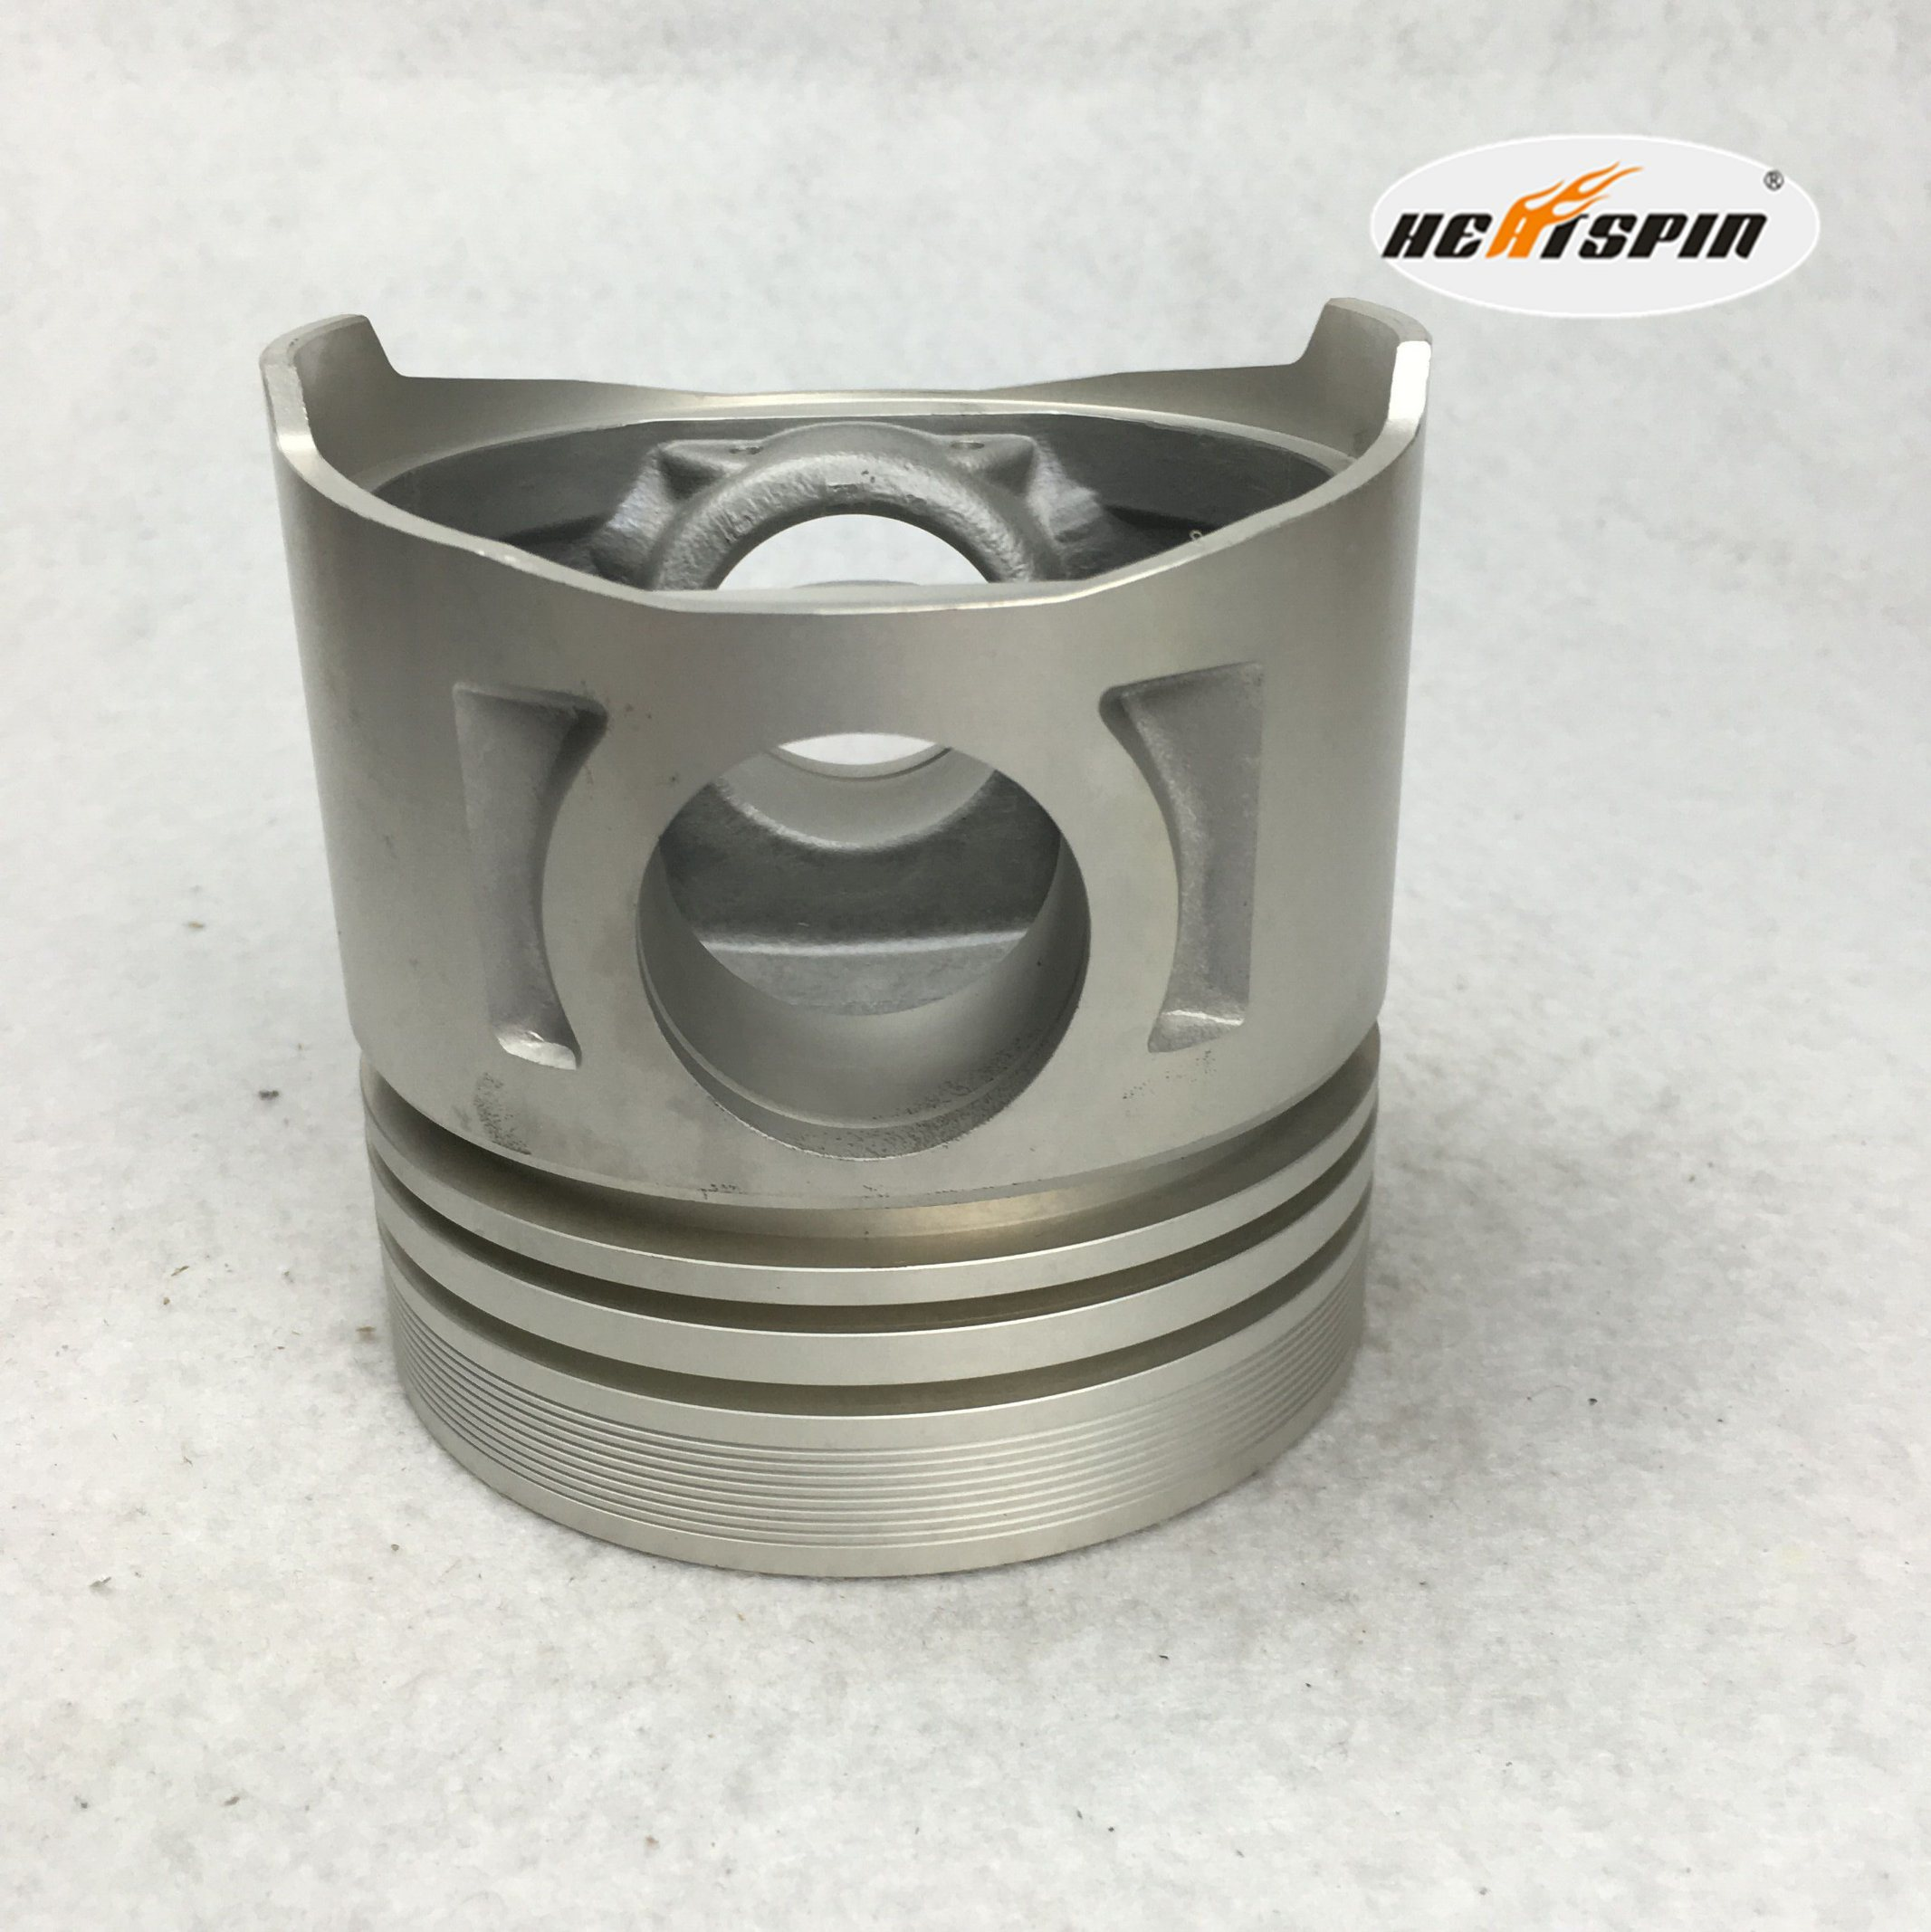 Isuzu 4bc2 Alfin Piston with One Year Warranty OEM 5-12111-230-4